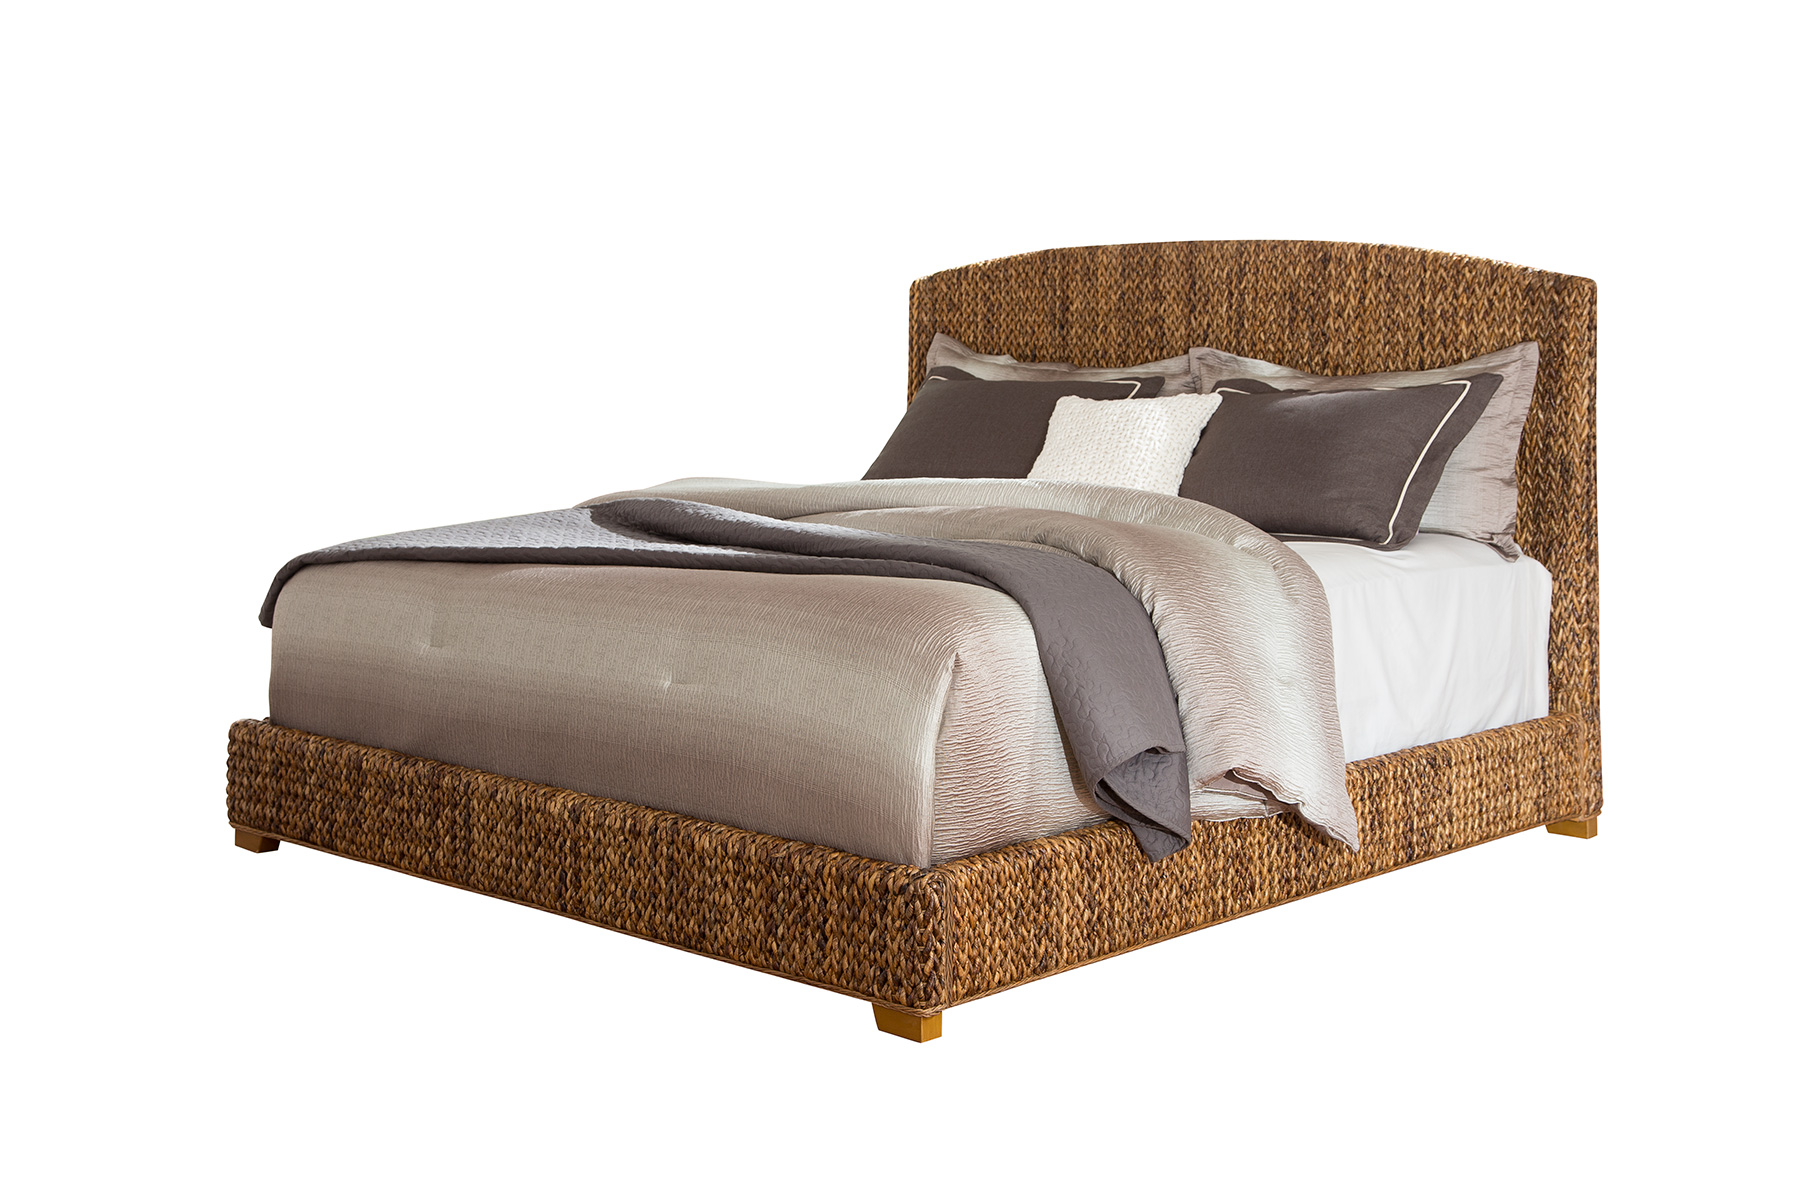 Laughton Queen Bed by Coaster at Lapeer Furniture & Mattress Center